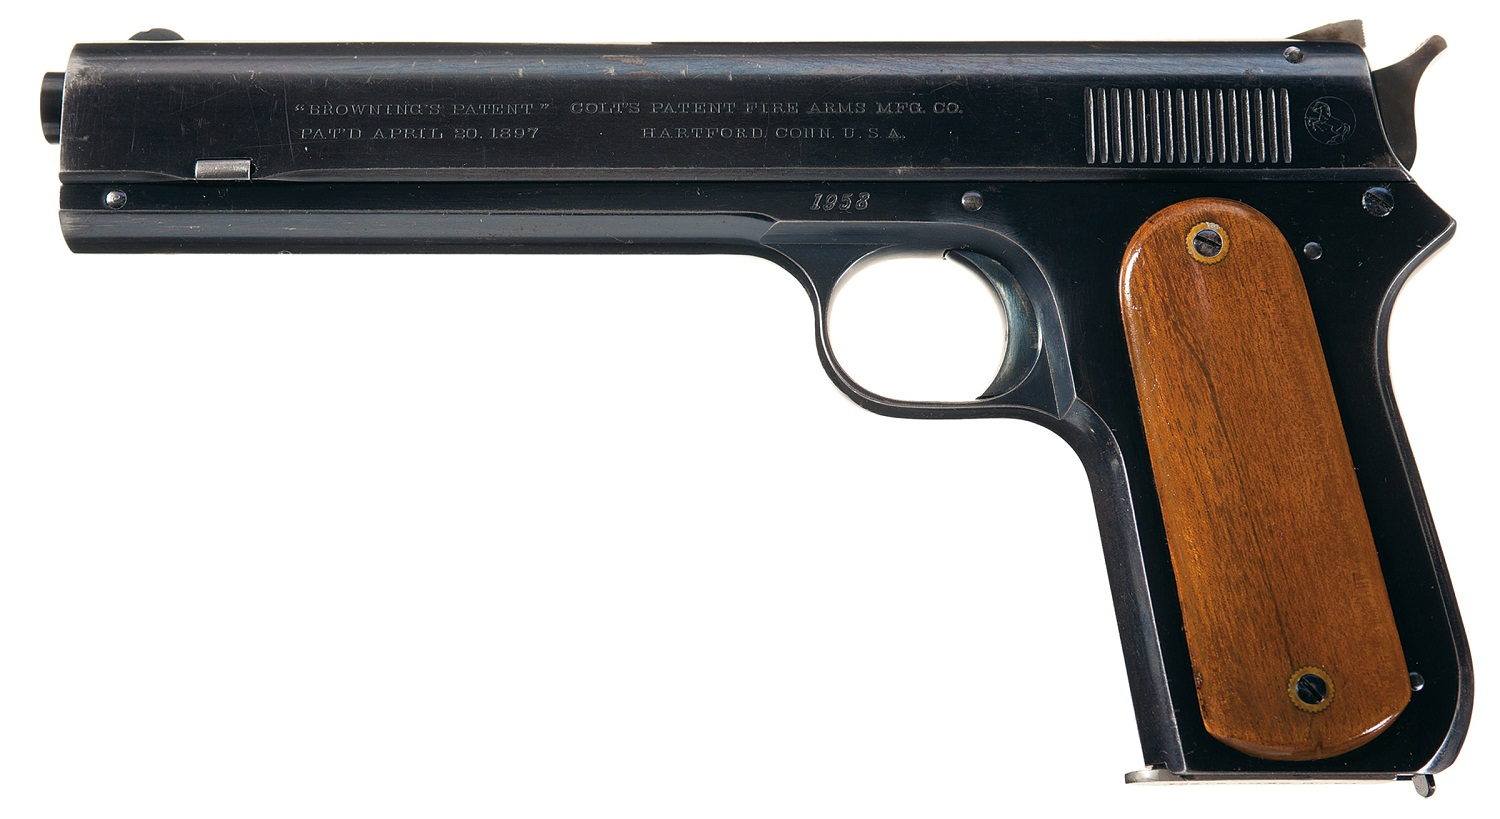 The Colt Model 1900